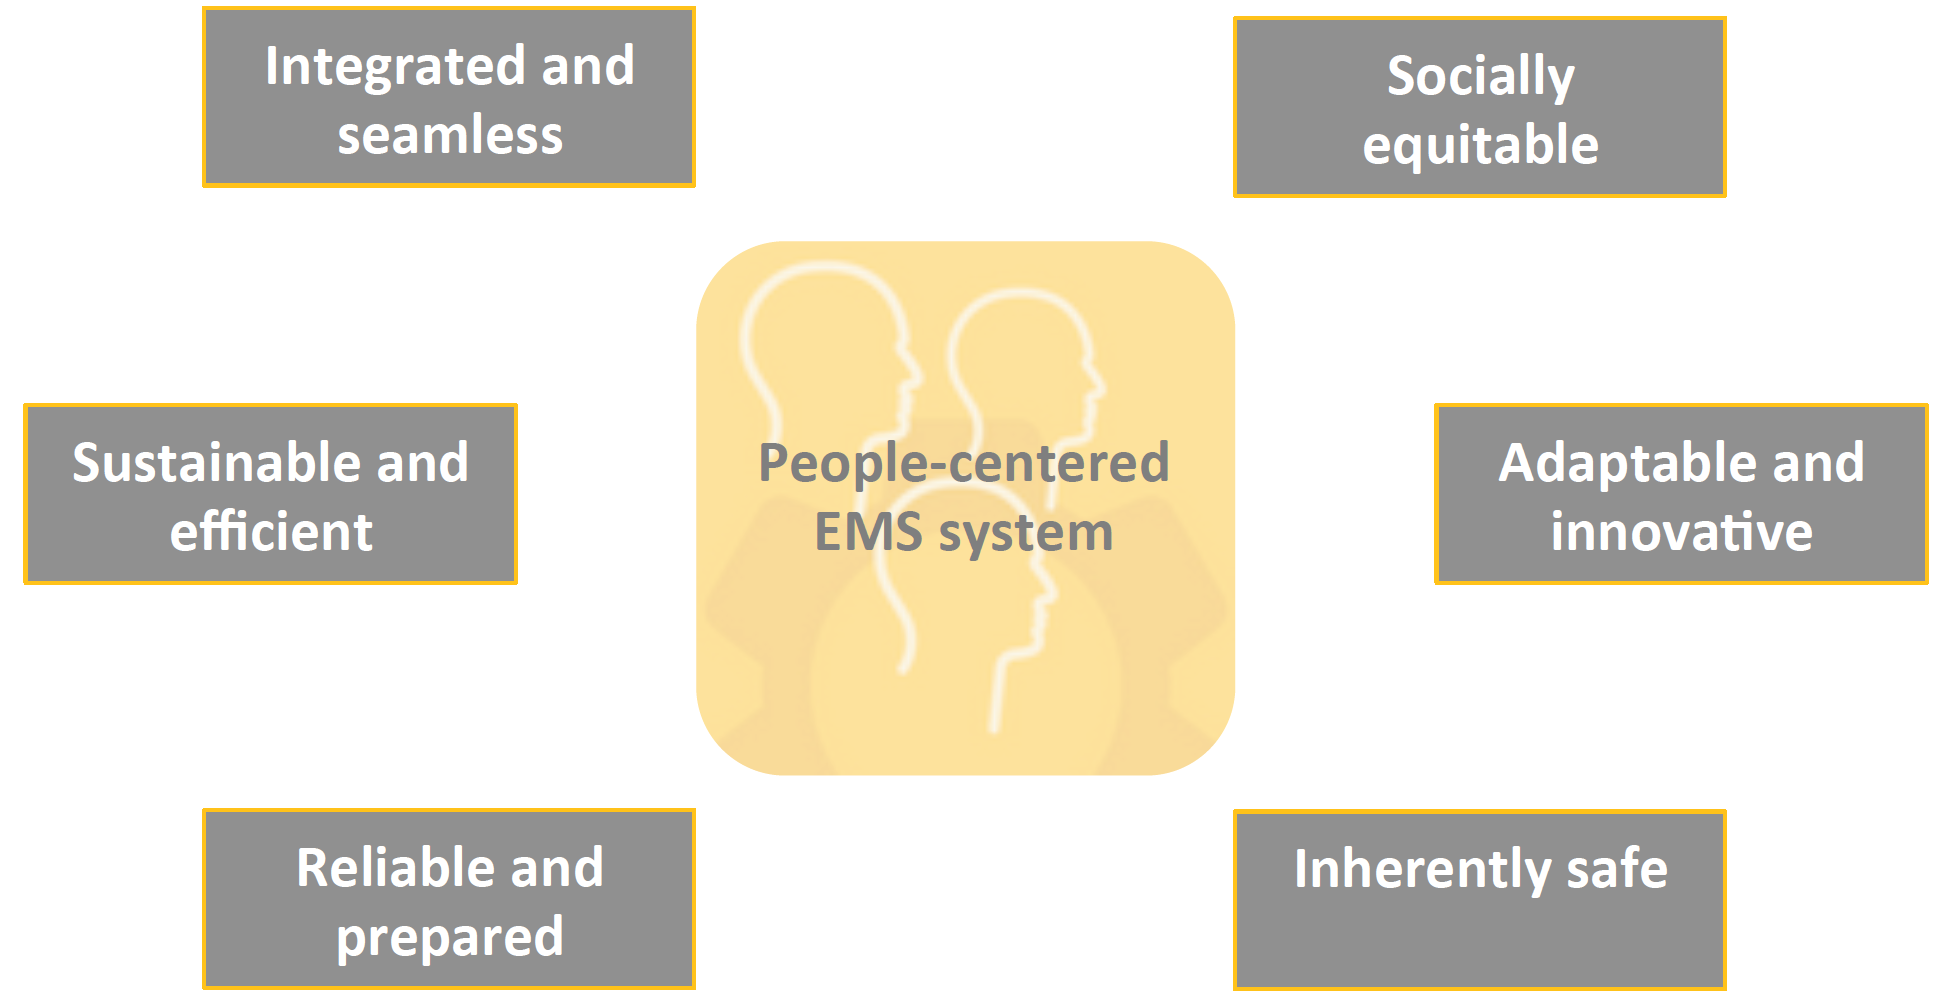 """The term """"people-centered"""" is used rather than patient-centered as the EMS system must meet the needs of patients, families, communities and care providers."""